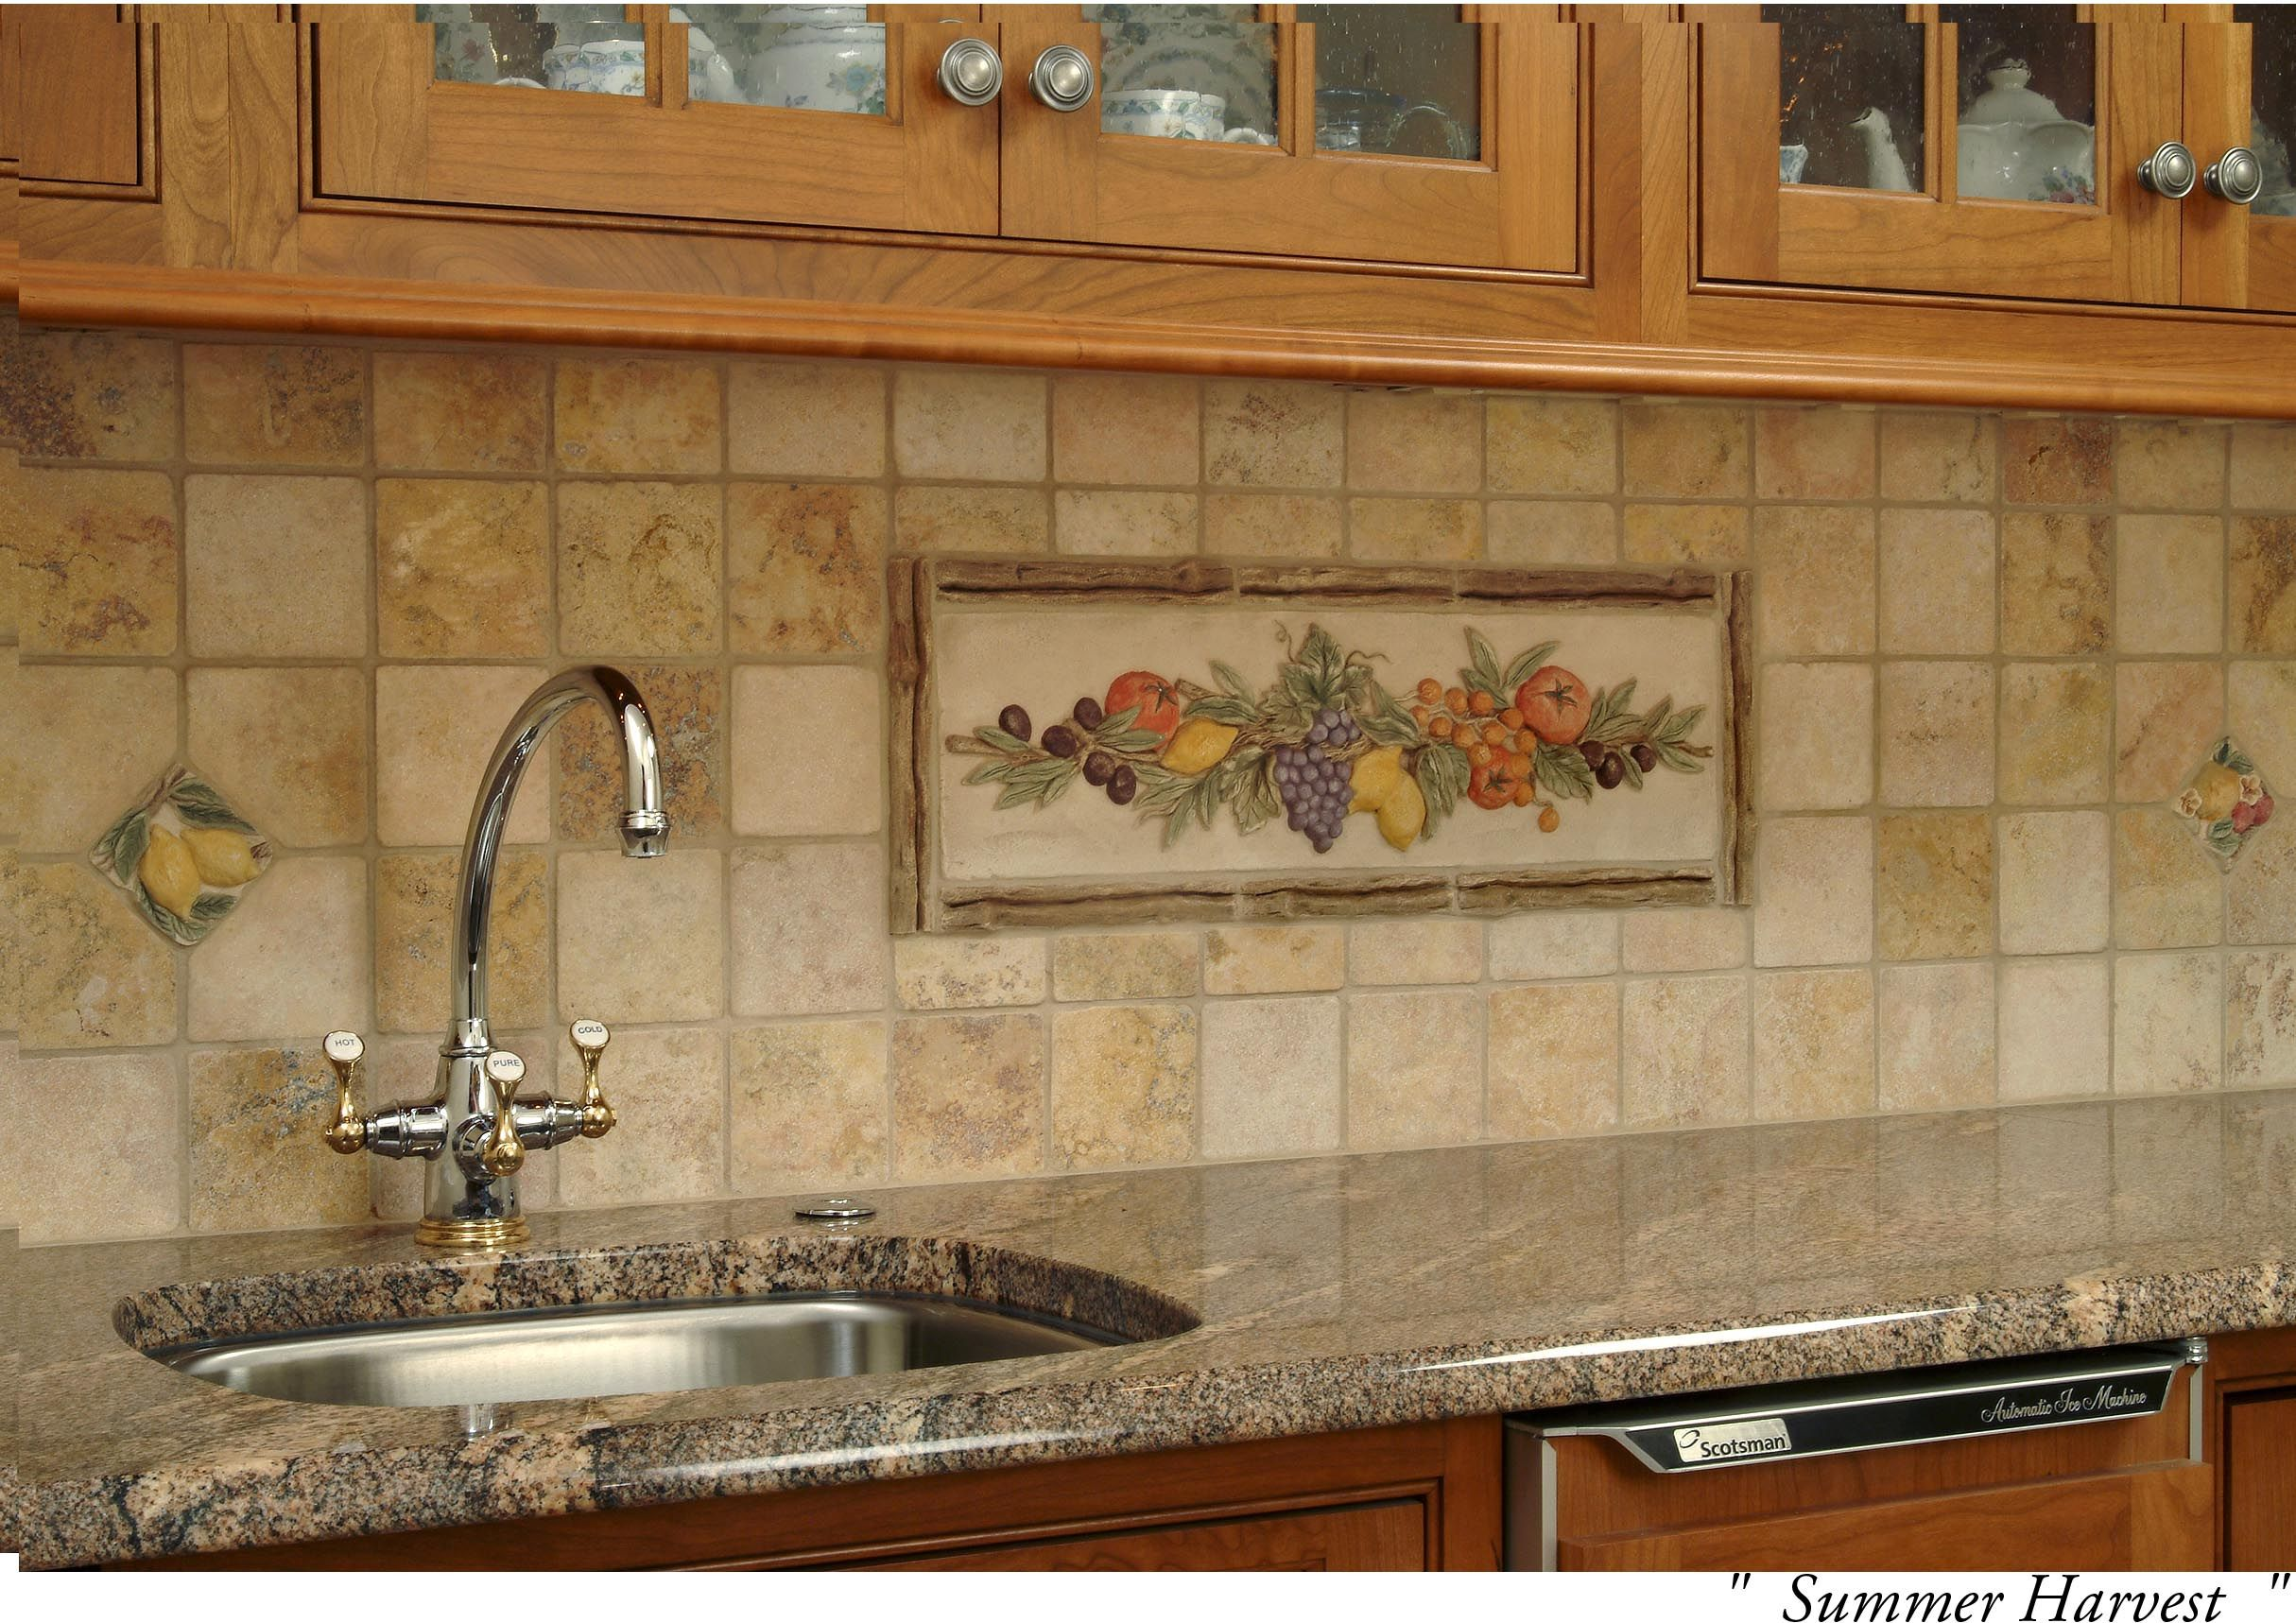 Ceramic Backsplash Tile Summer Harvest Matt 8 X 25 Shown With